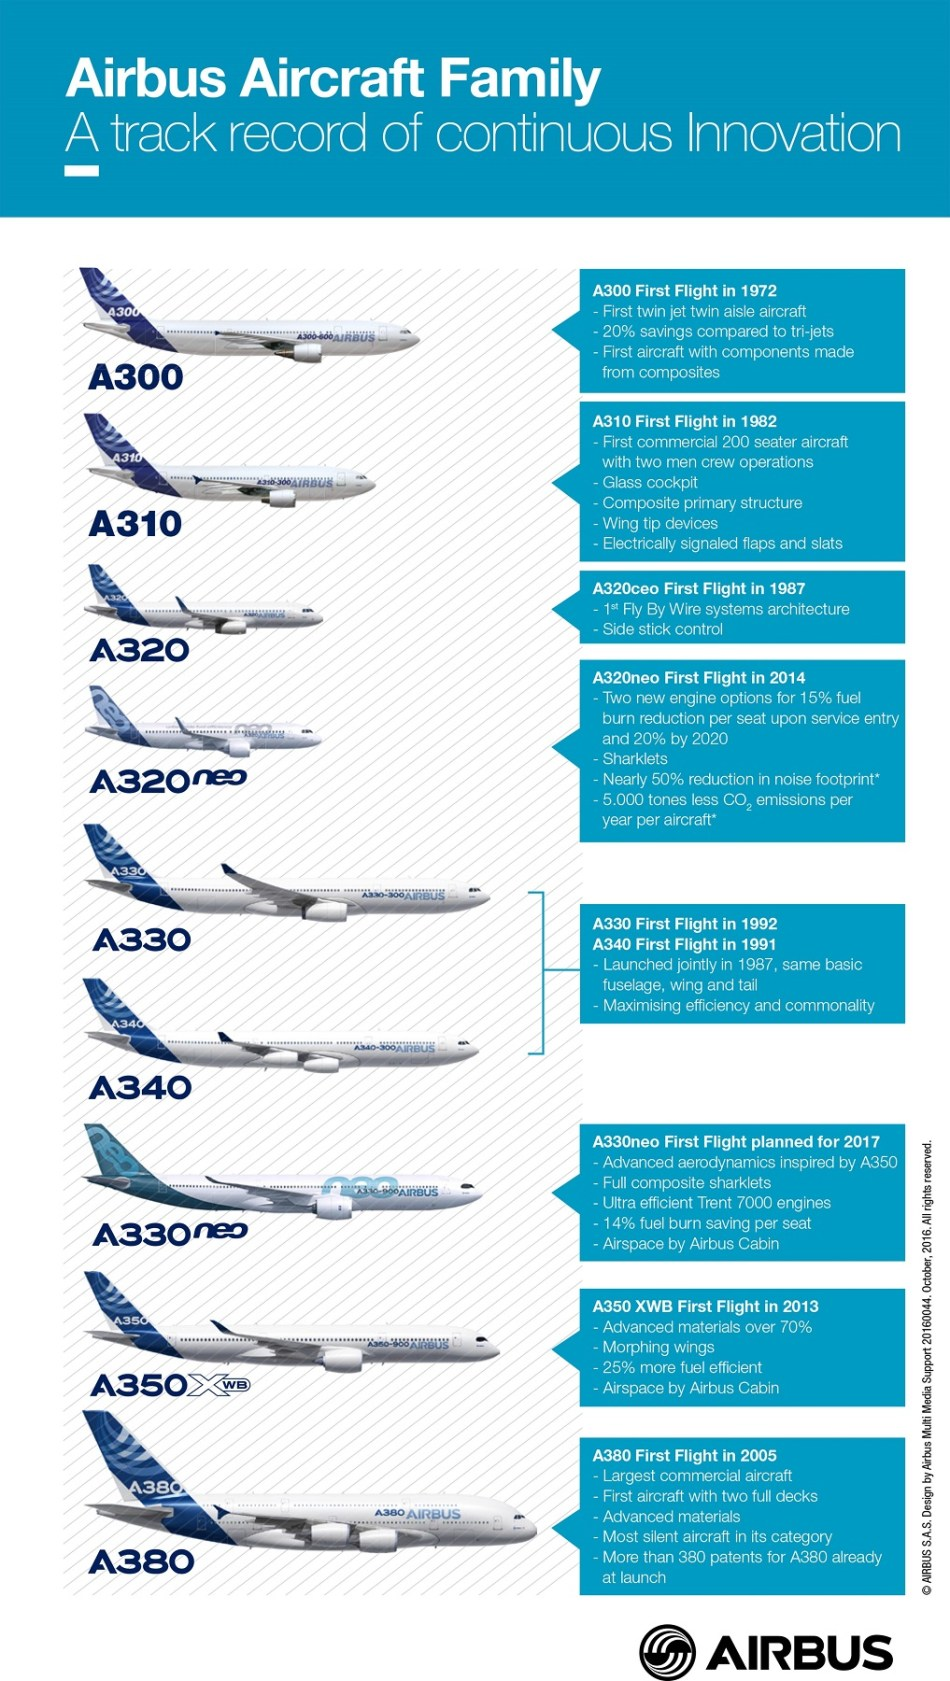 airbus_aircraft_family_continous_innovation_infographics_oct_2016c